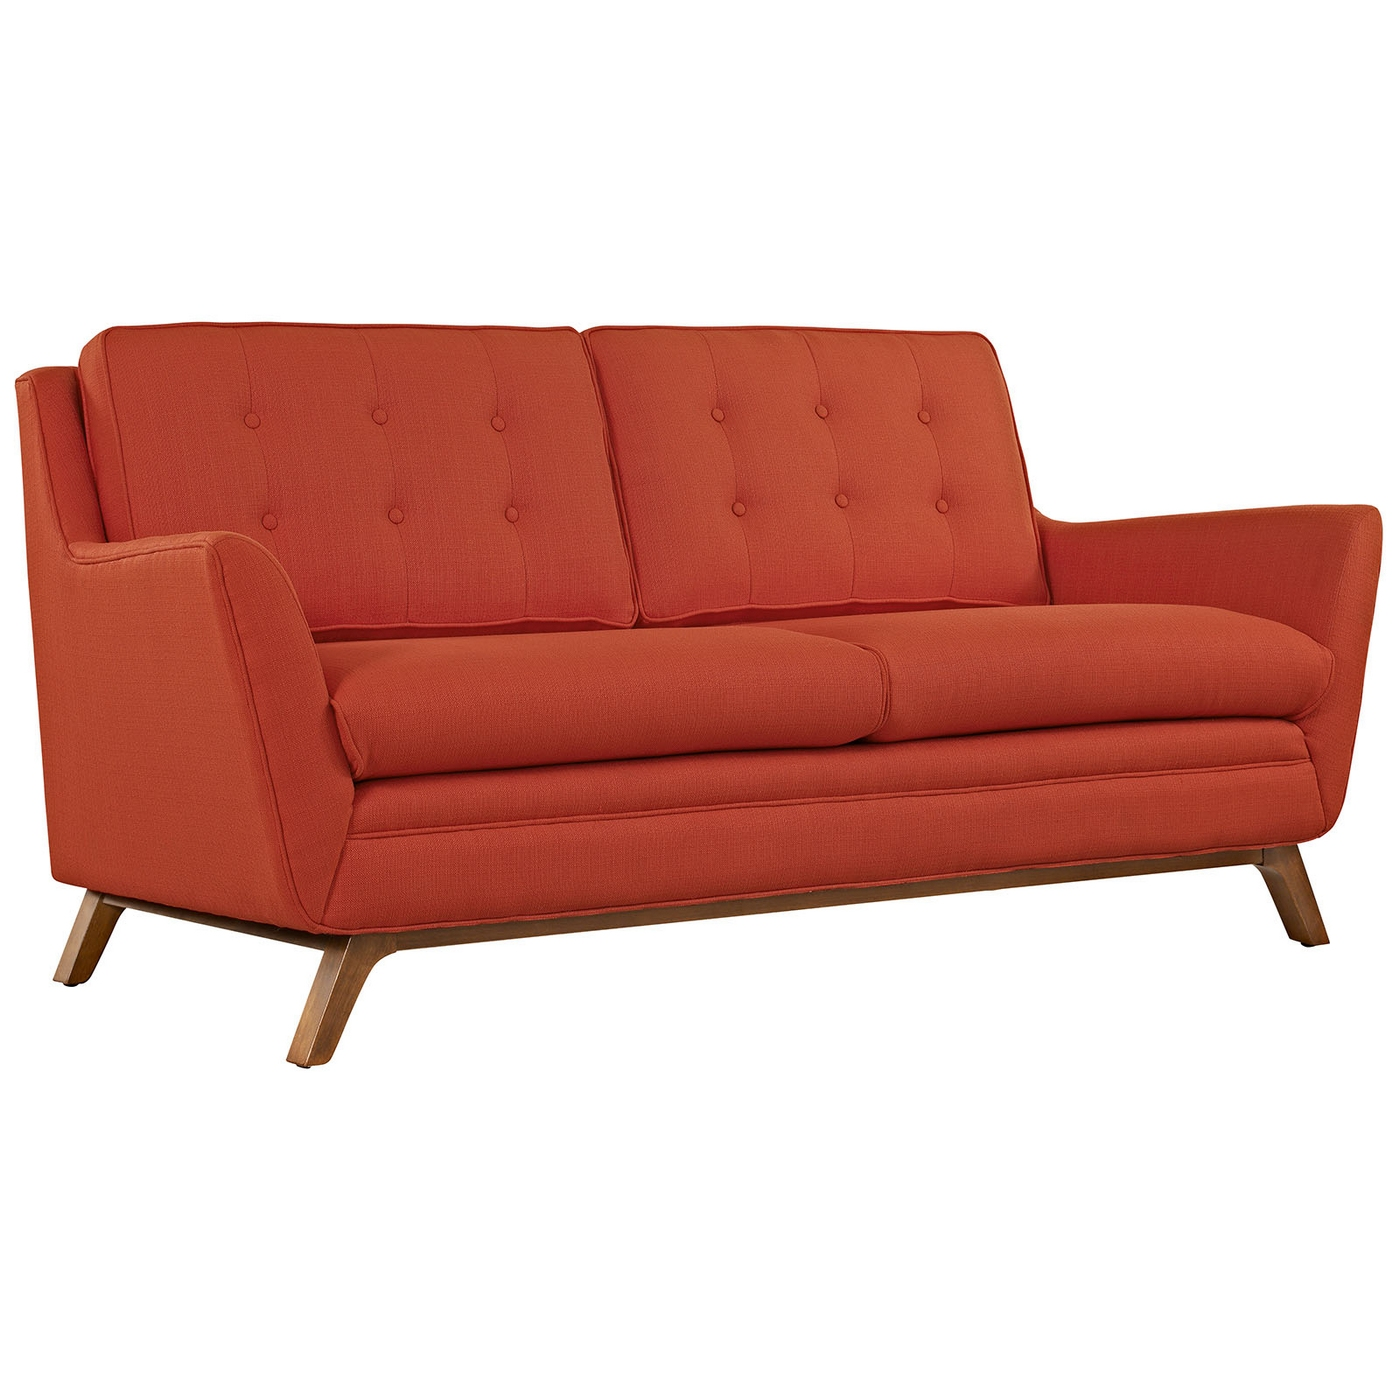 Beguile Contemporary Button Tufted Upholstered Loveseat Atomic Red